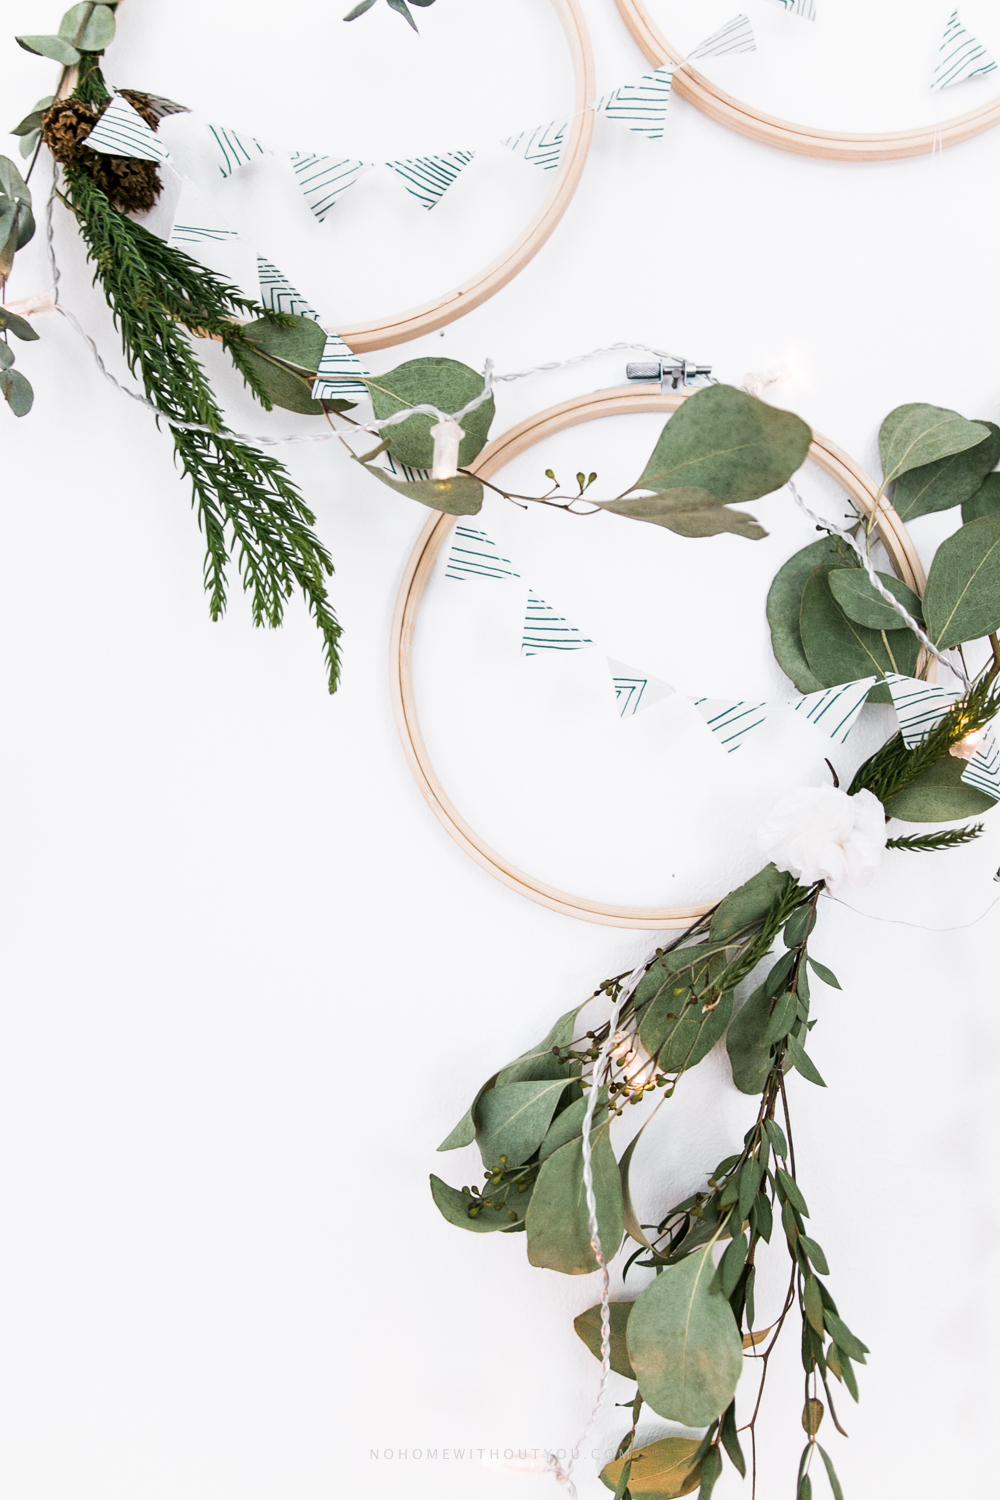 DIY plant wreath eucalyptus coniferous No Home Without You (9 of 12)